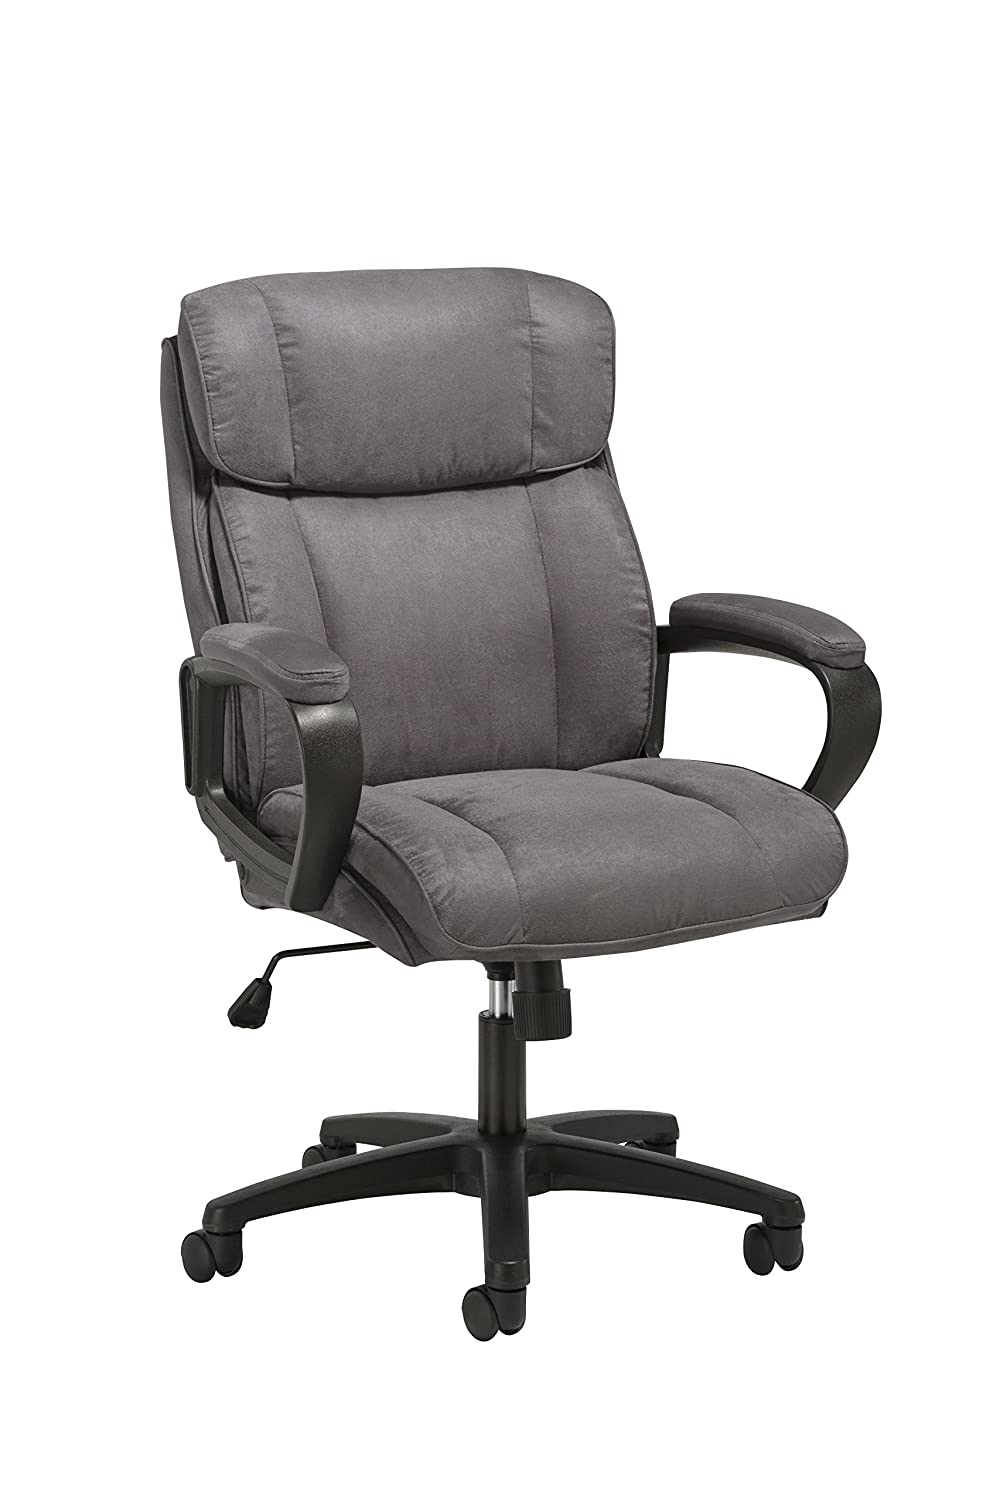 Essentials Executive Chair - Mid Back Office Computer Chair (ESS-3082-GRY)